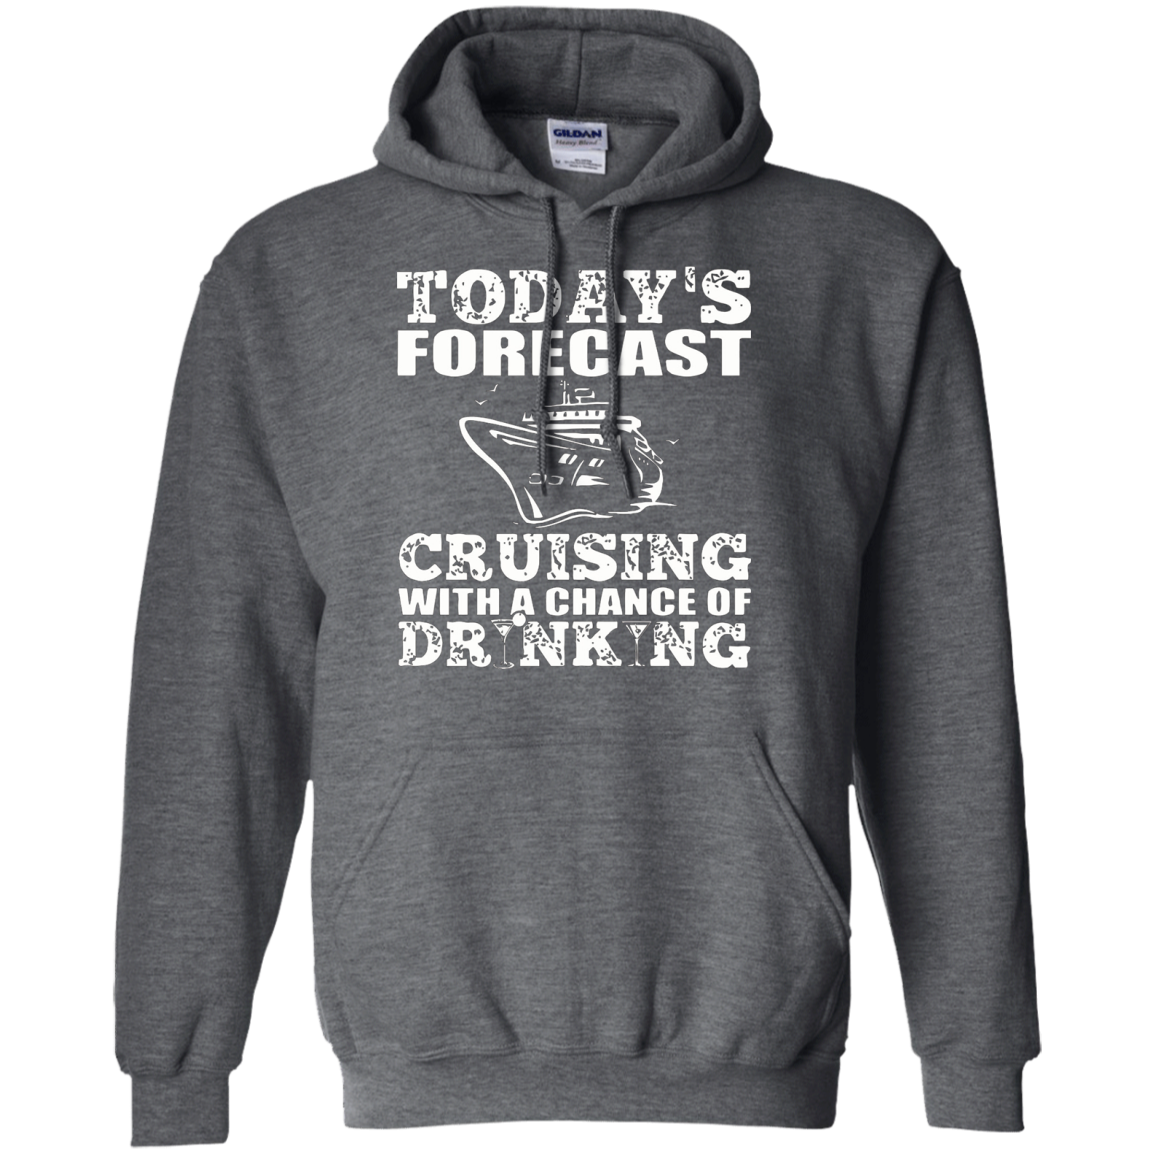 Cruising Shirt - Forecast Cruising With Chance Drinking